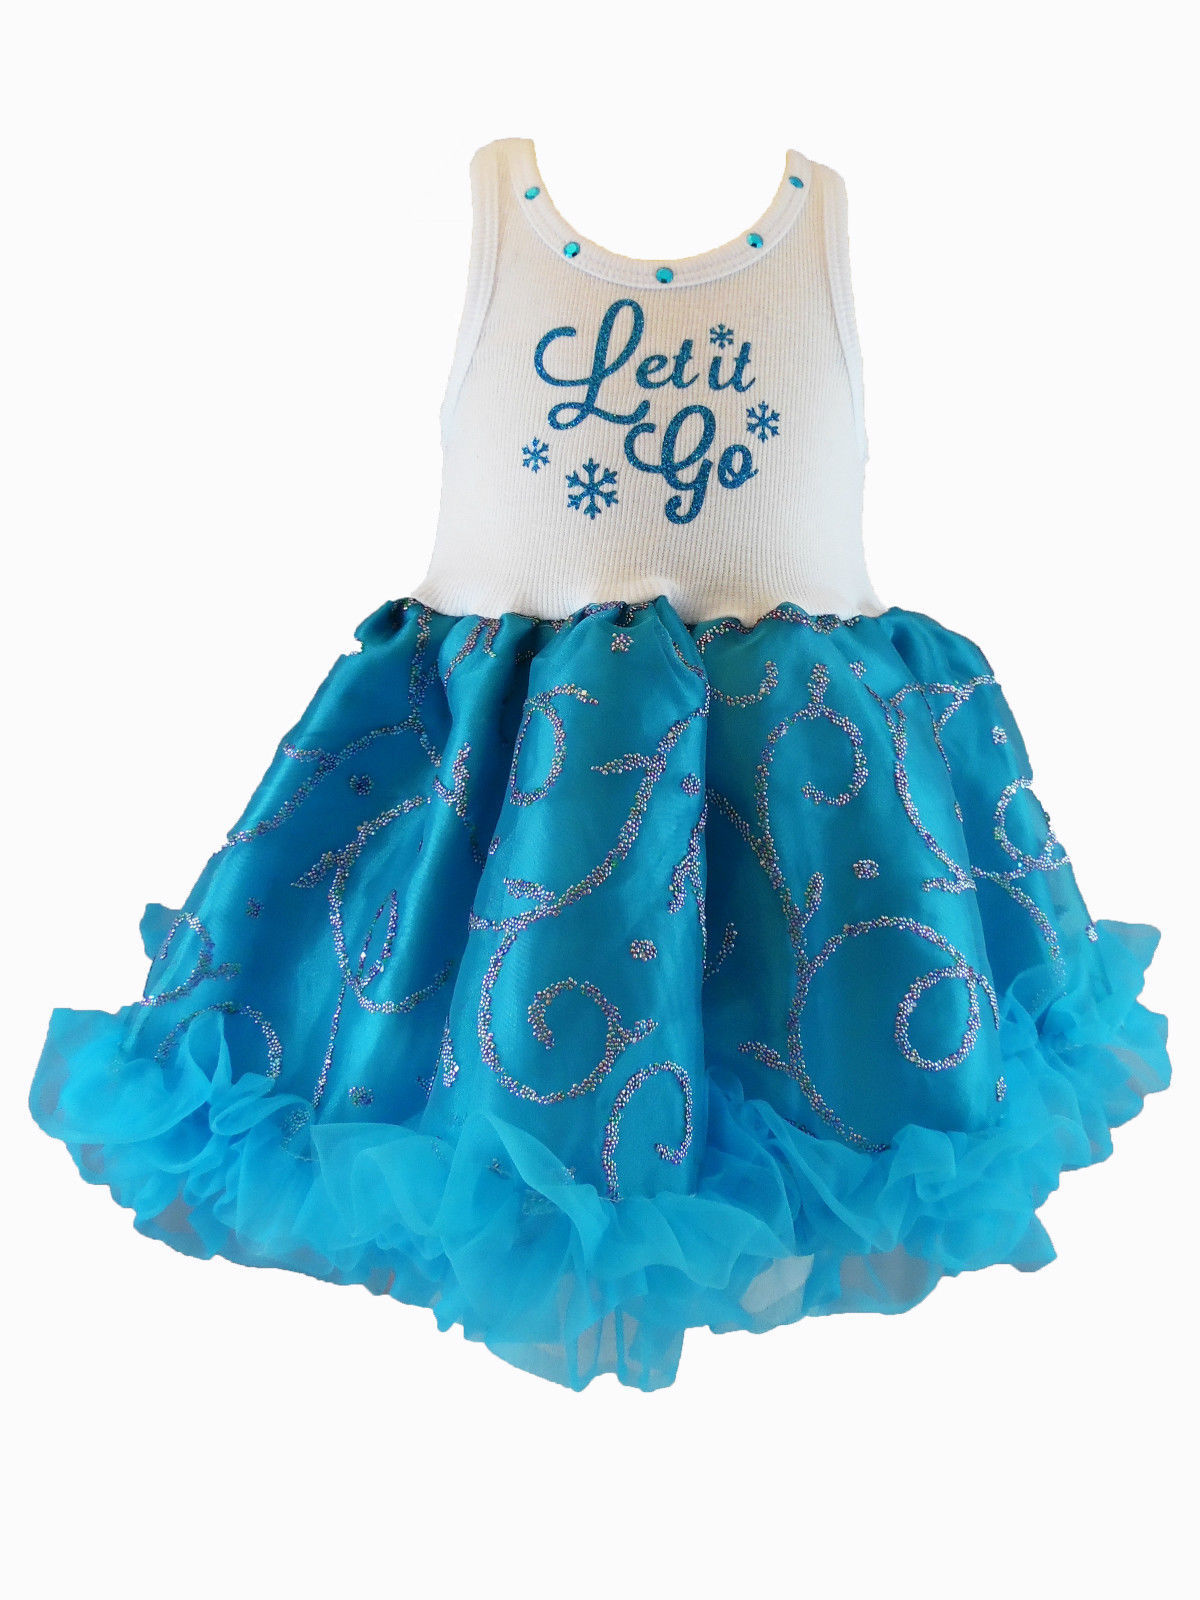 Chic Let It Go Chiffon Sleeveless Tutu Dress 3-6x Cupcakes & Kisses Turquoise